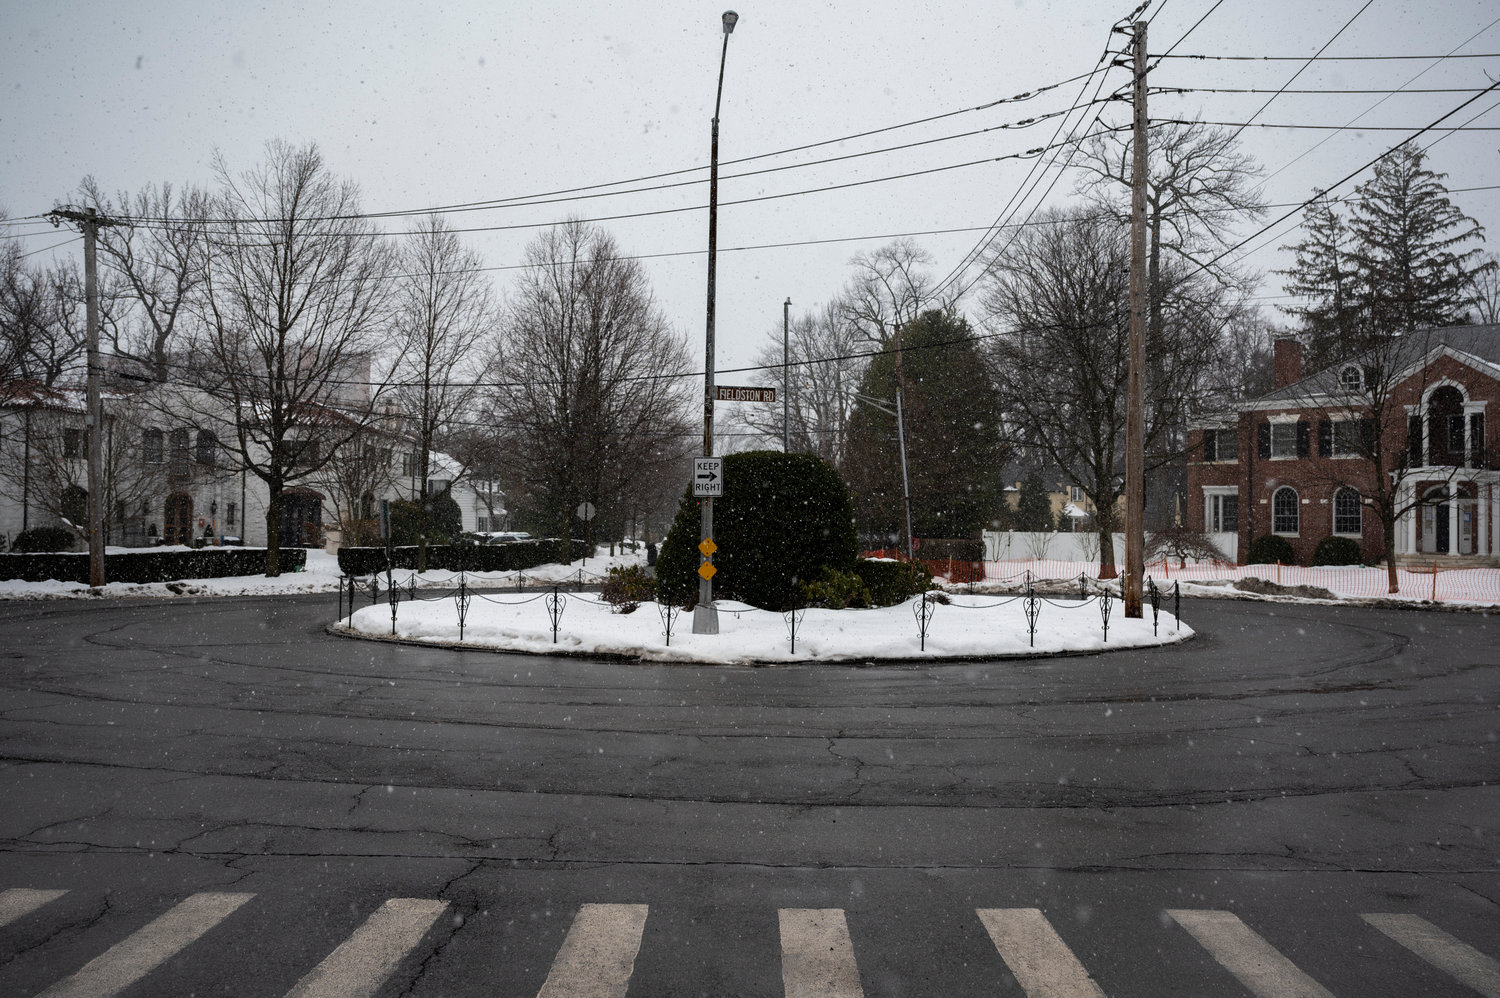 Roundabouts are few and far between in the city, but one exists locally at West 246th Street and Fieldston Road. A few community members proposed the idea of installing a roundabout at West 237th Street and Independence Avenue to halt reckless driving, but the idea proved a bit unpopular at a recent Community Board 8 traffic and transportation committee meeting.